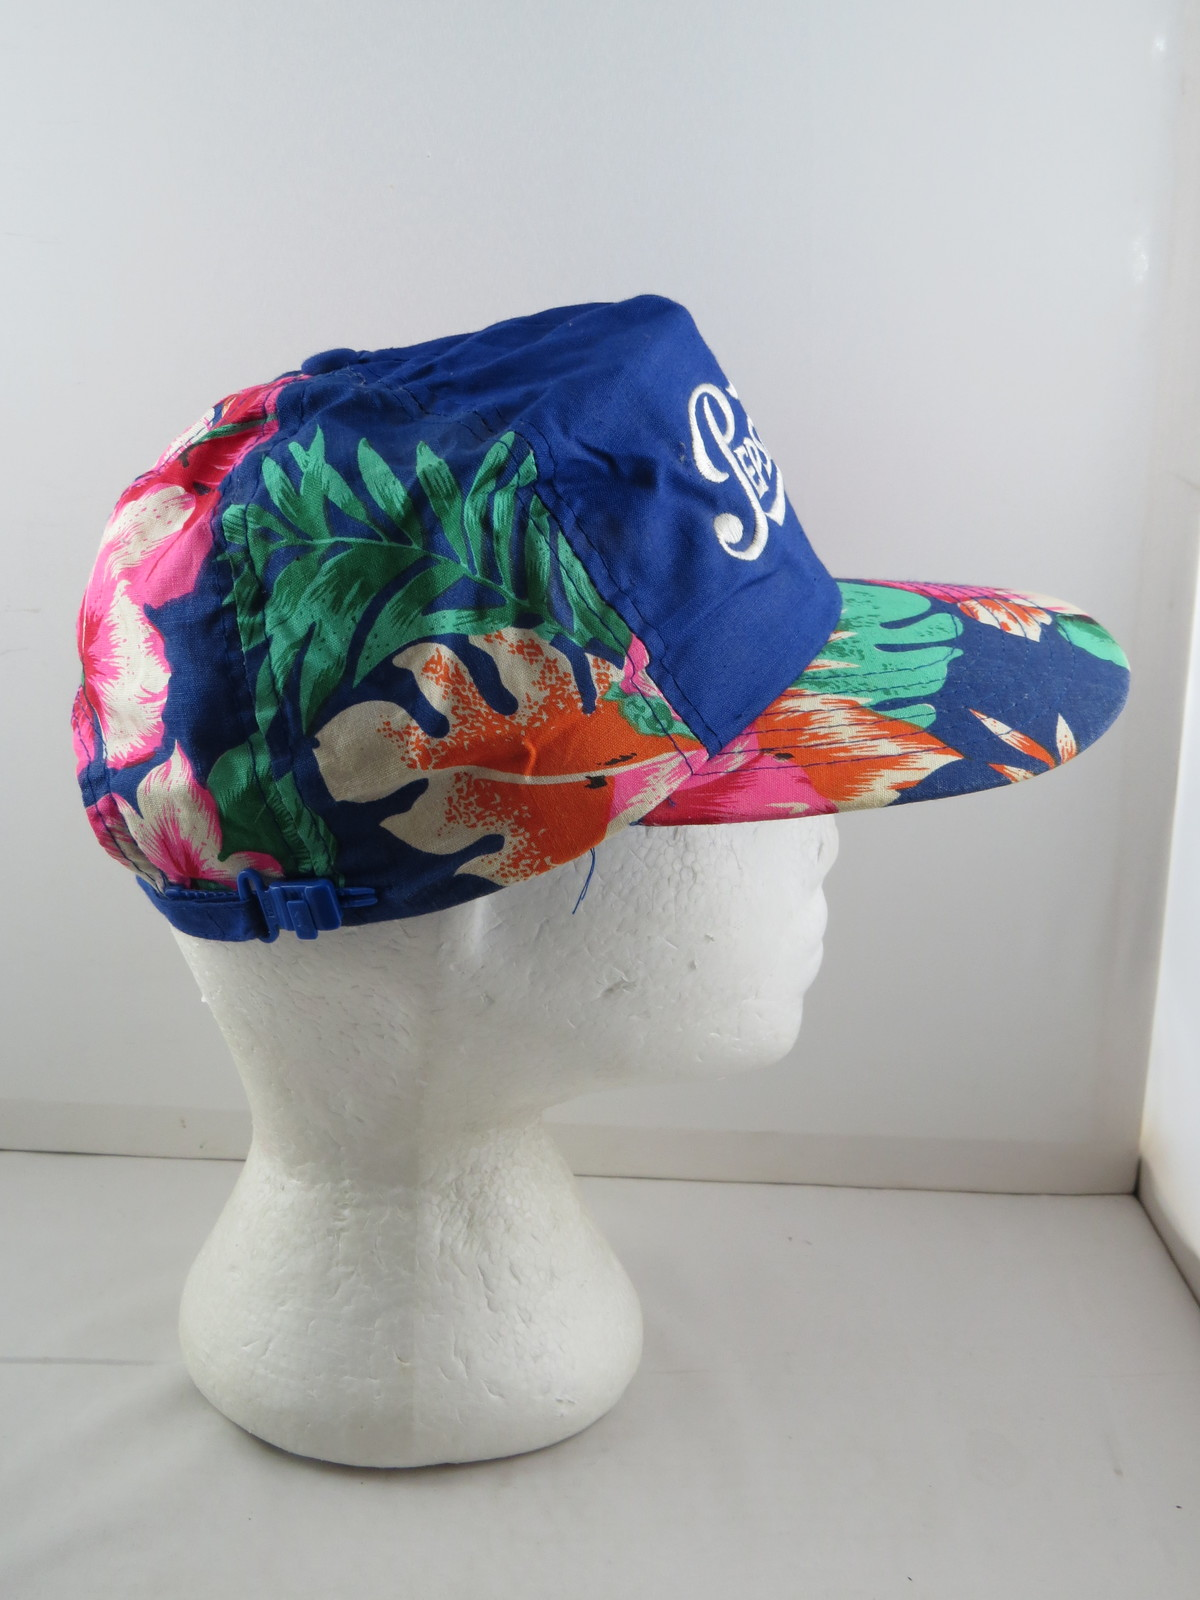 6a62b3fa69c Vintage Pepsi Hat - Pepsi-Cola with Hawaiian Floral Pattern - Adult Zipper  Back